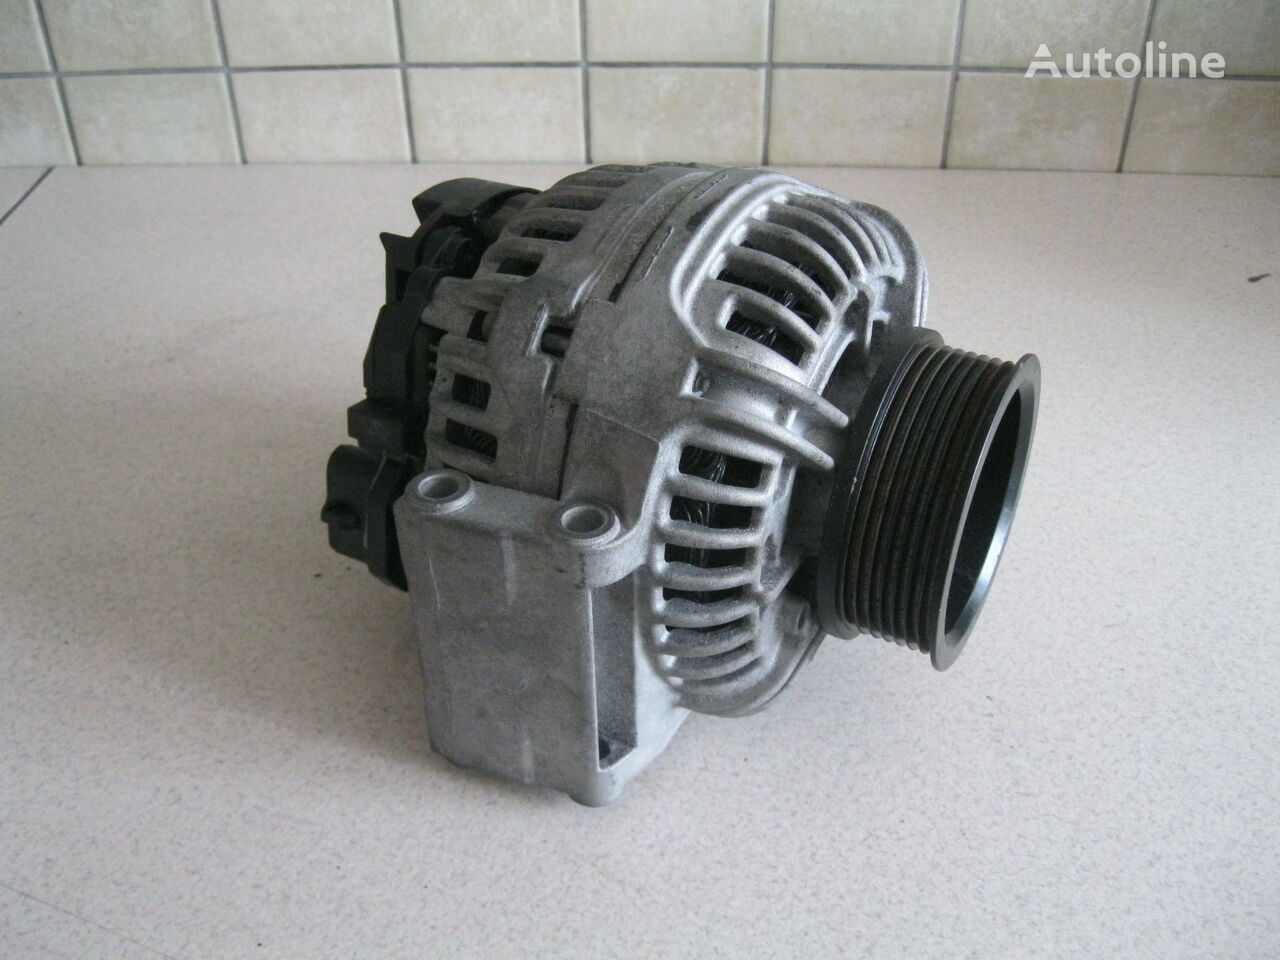 DAF ALTERNATOR alternator for DAF XF 105 tractor unit